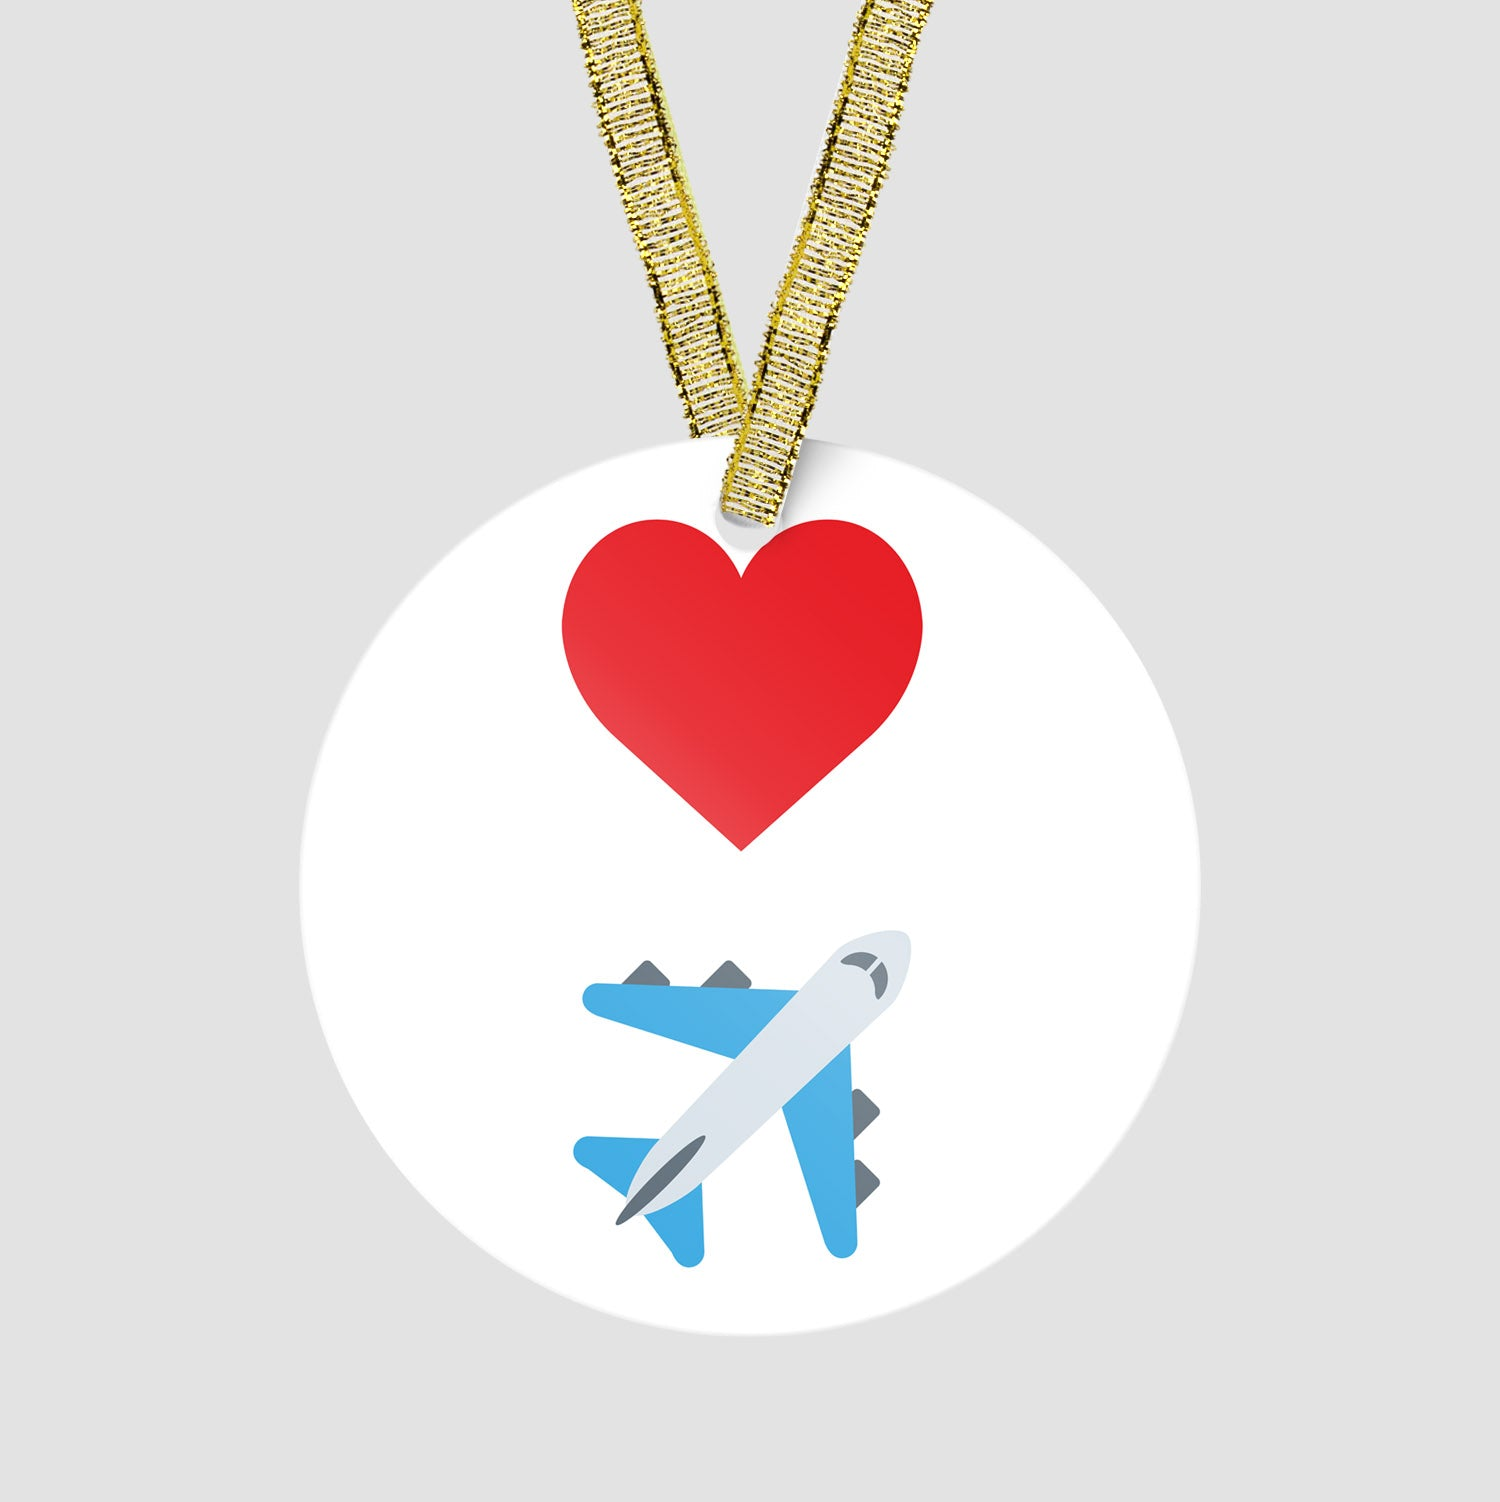 Emoji Heart Plane Ornament